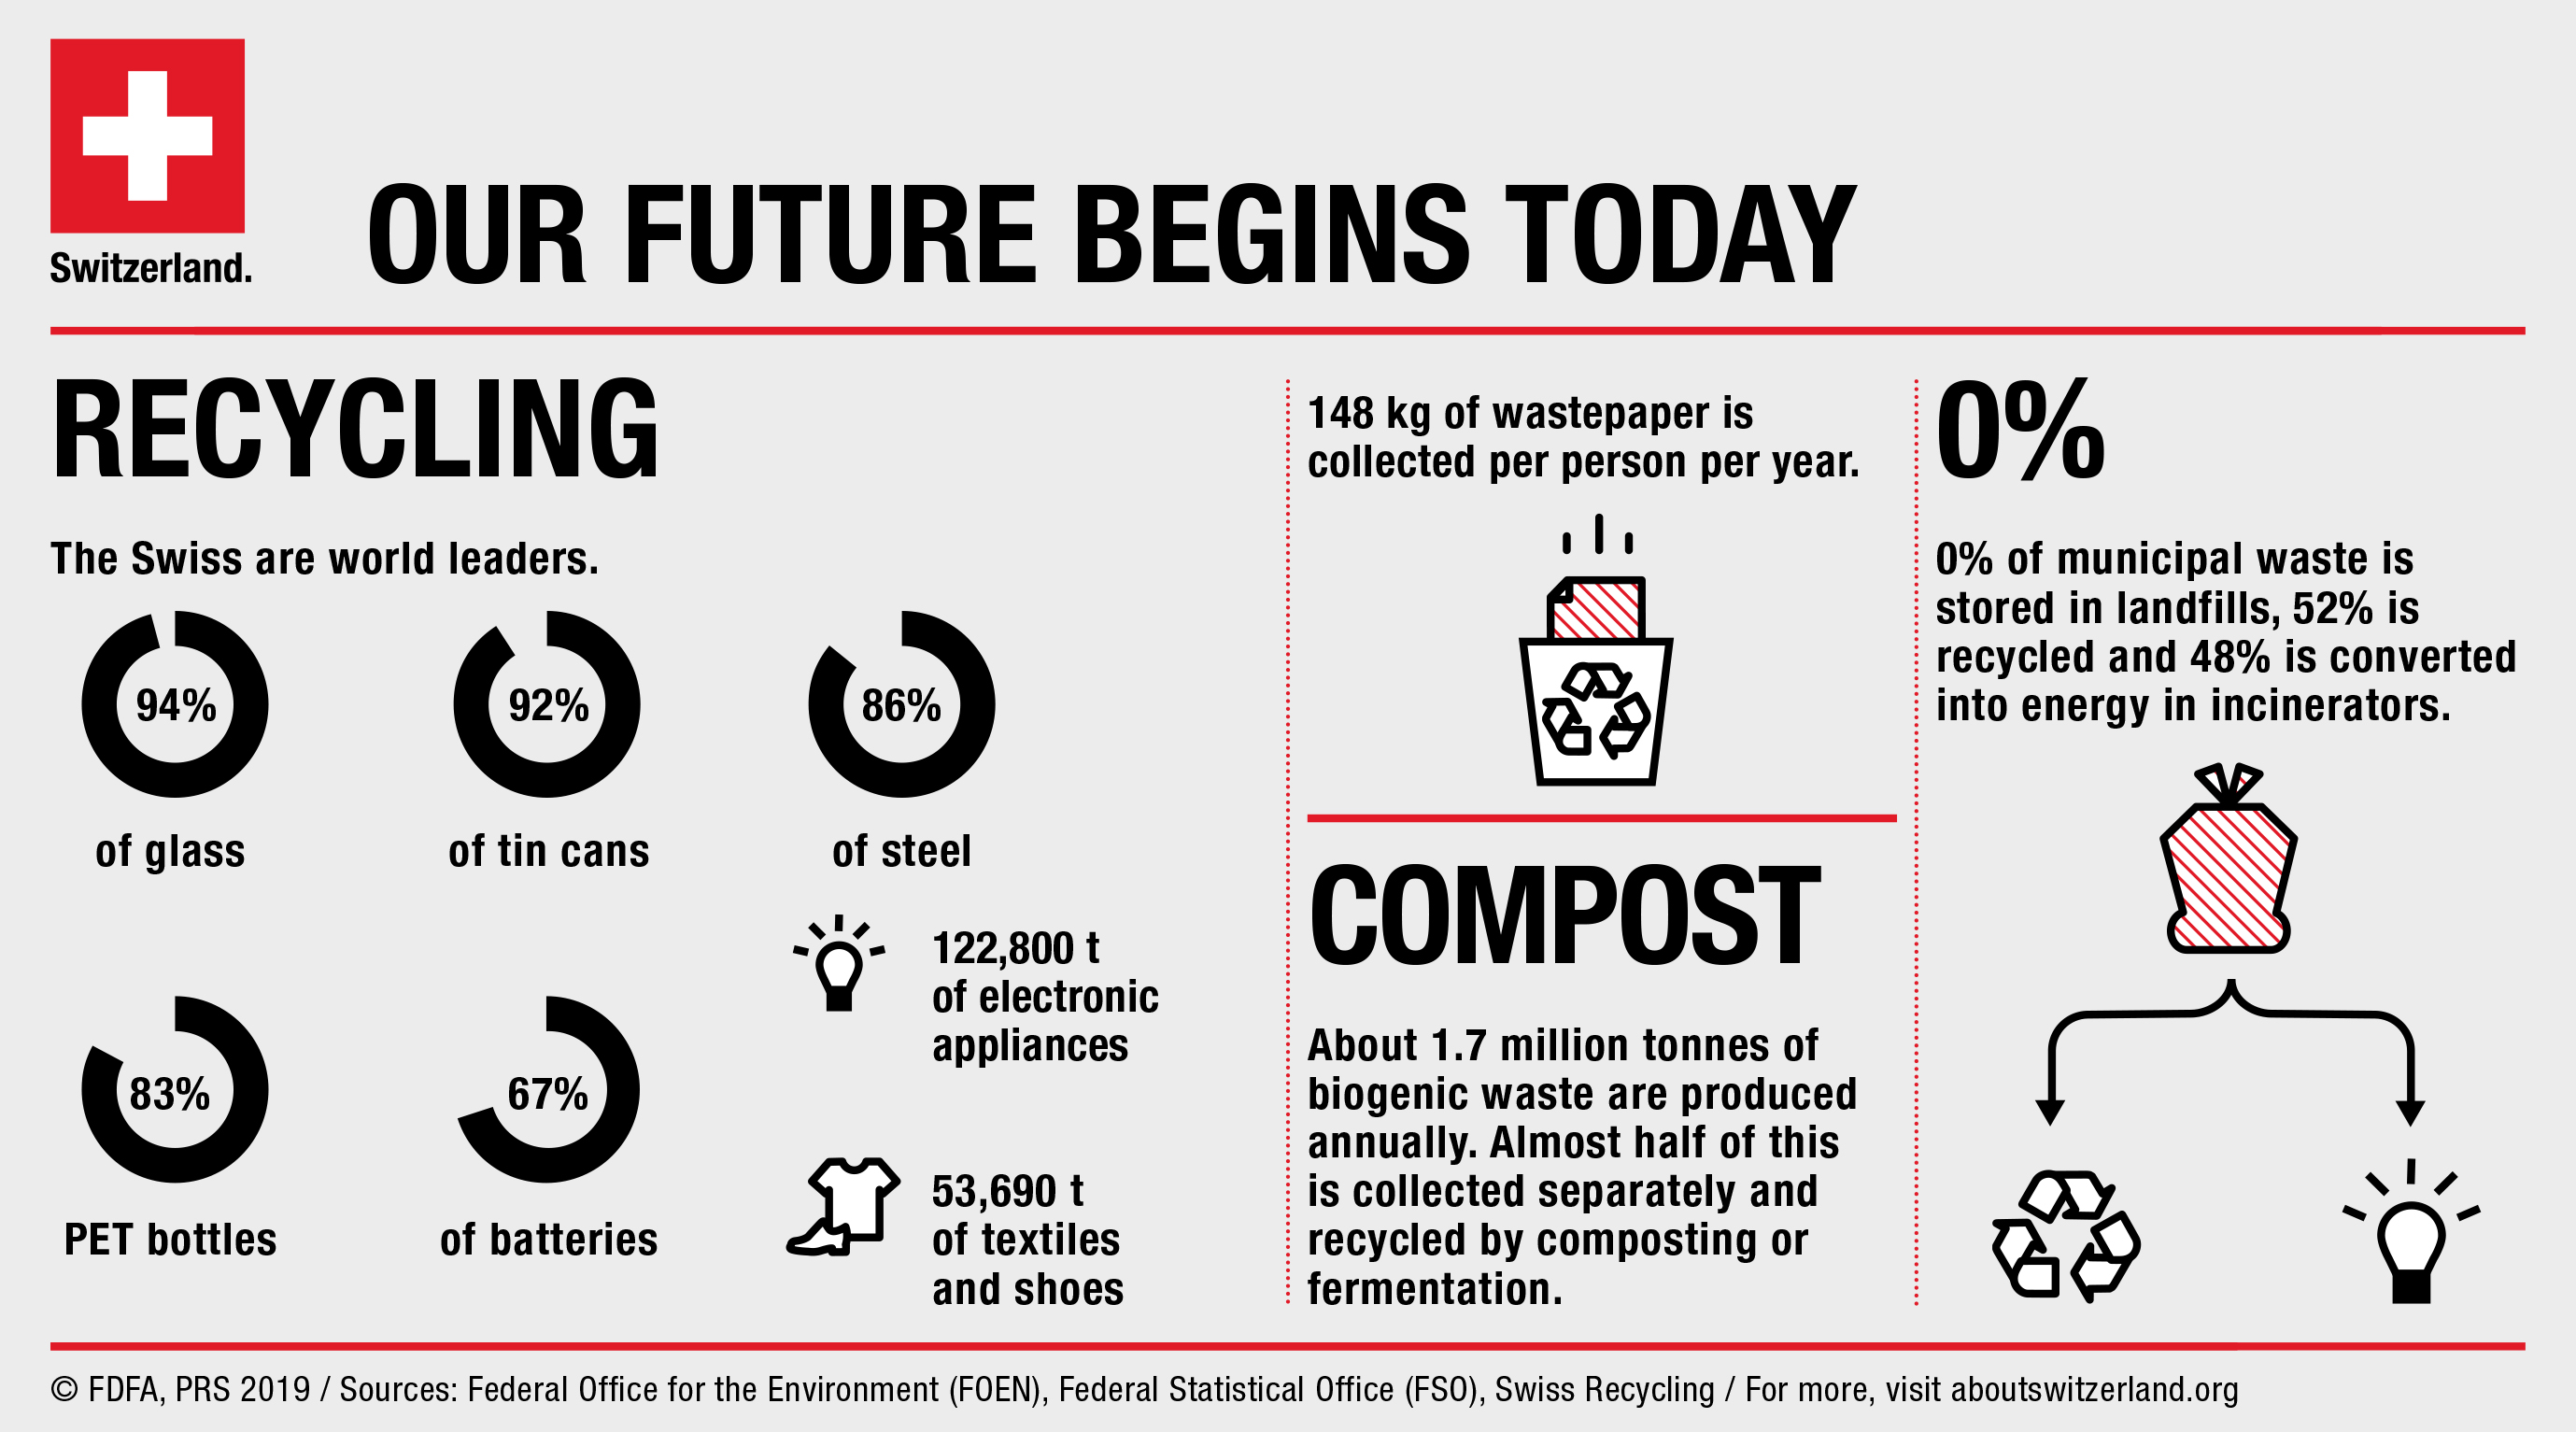 As the infographic shows, 52% of waste is recycled. The remaining 48% is sent to incineration plants where it is converted into energy.